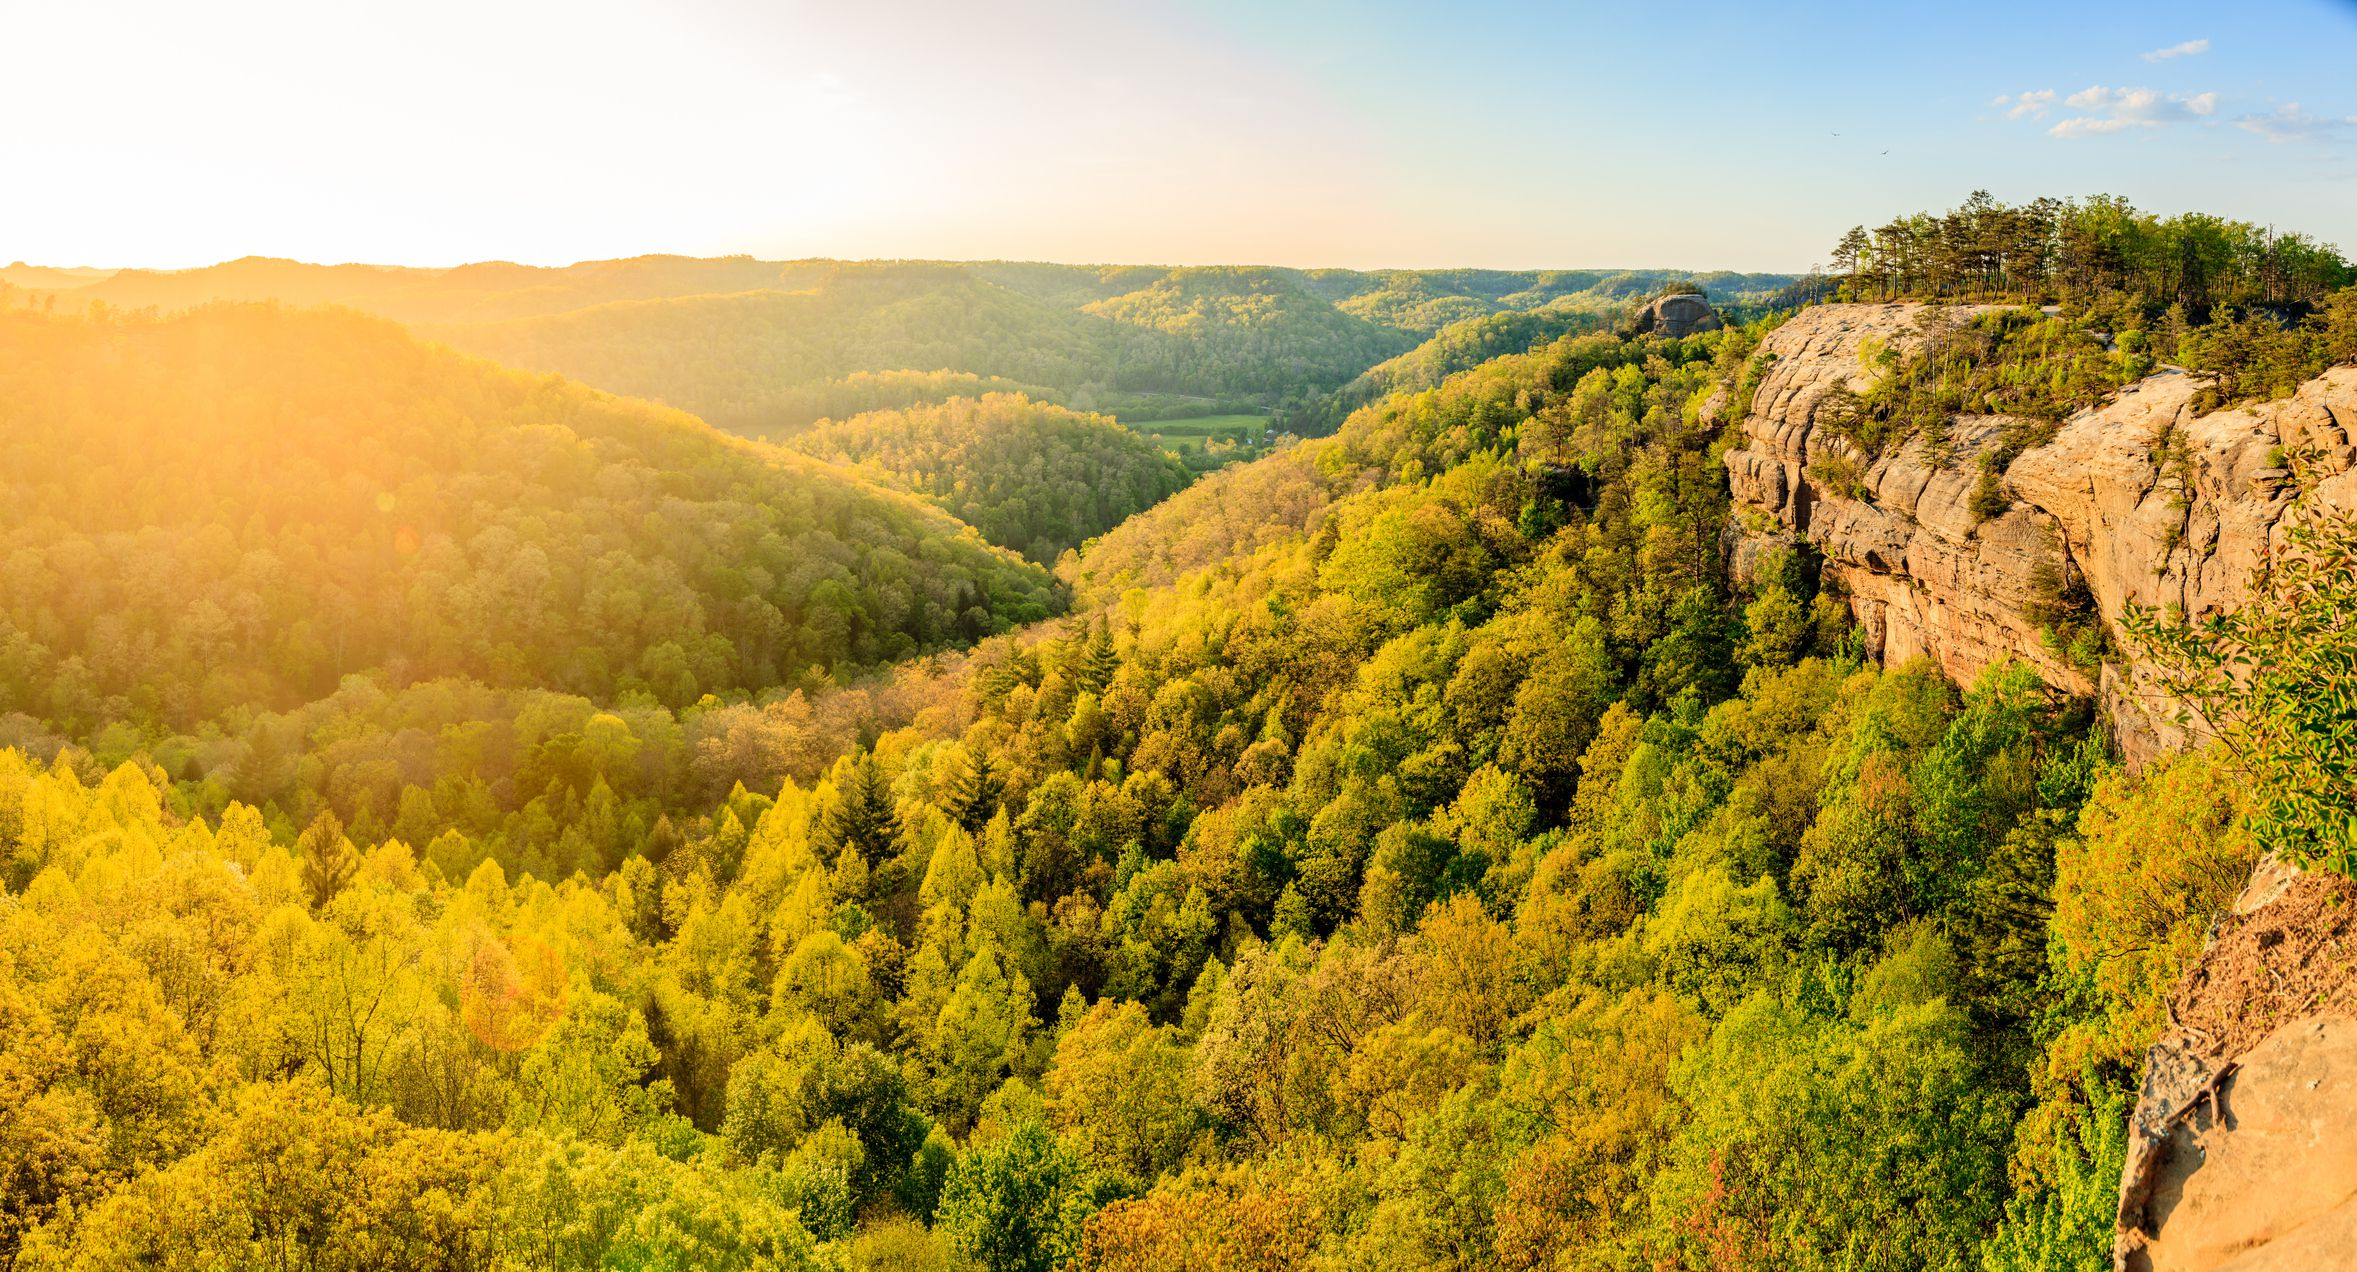 Panoramic view from the ridge top at Red River Gorge in Kentucky